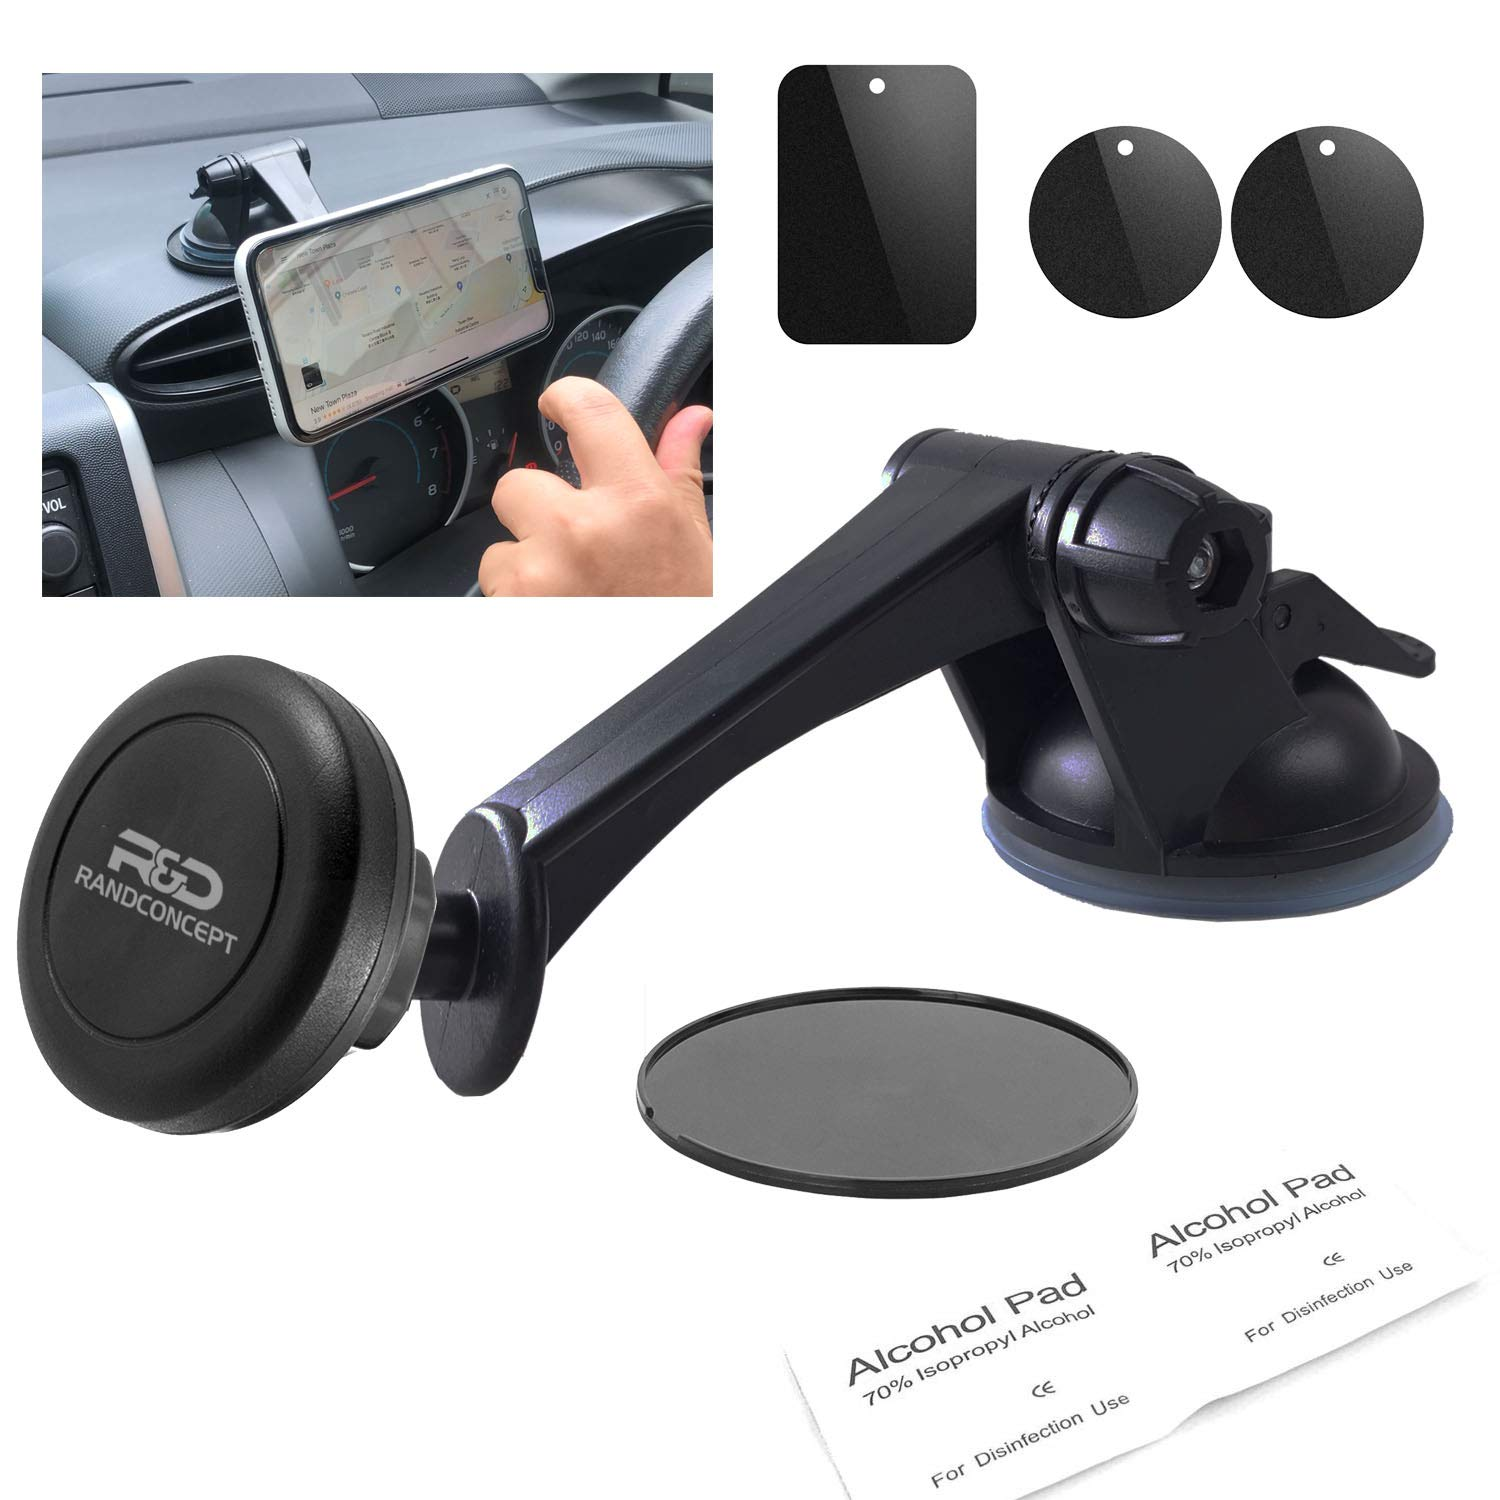 Randconcept - [New Version] Magnetic Phone Car Mount | Universal Phone Holder for Dashboard & Windshield | 3 inch Heavy Duty Suction Cup Phone Holder | 360 Rotation Strong Magnets for All Cell Phones by Randconcept